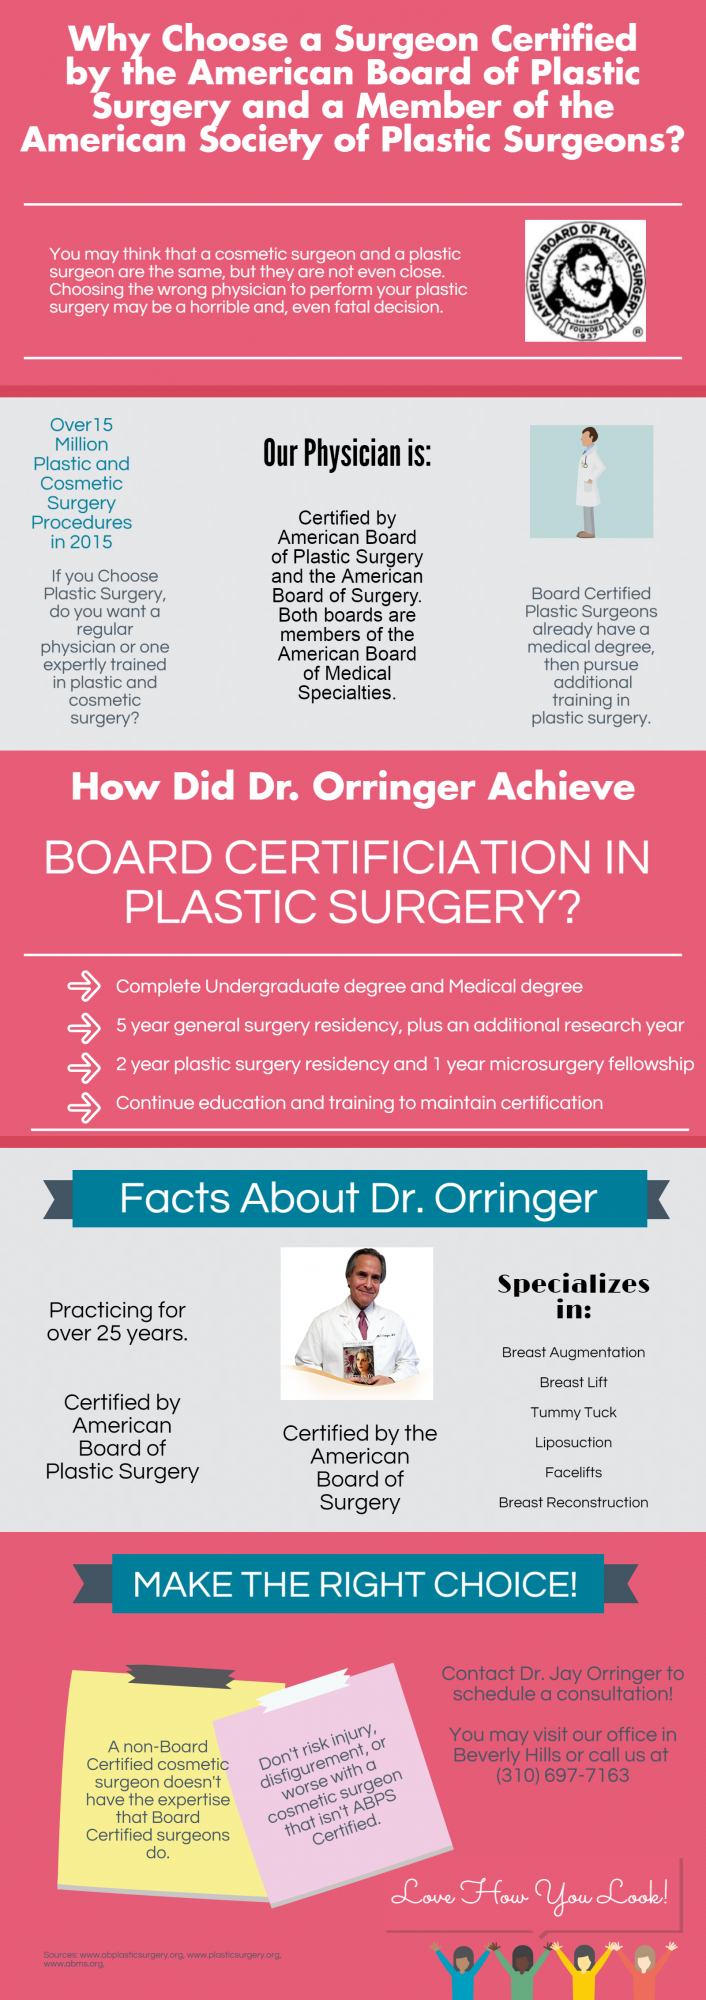 Plastic Surgeon in Los Angeles